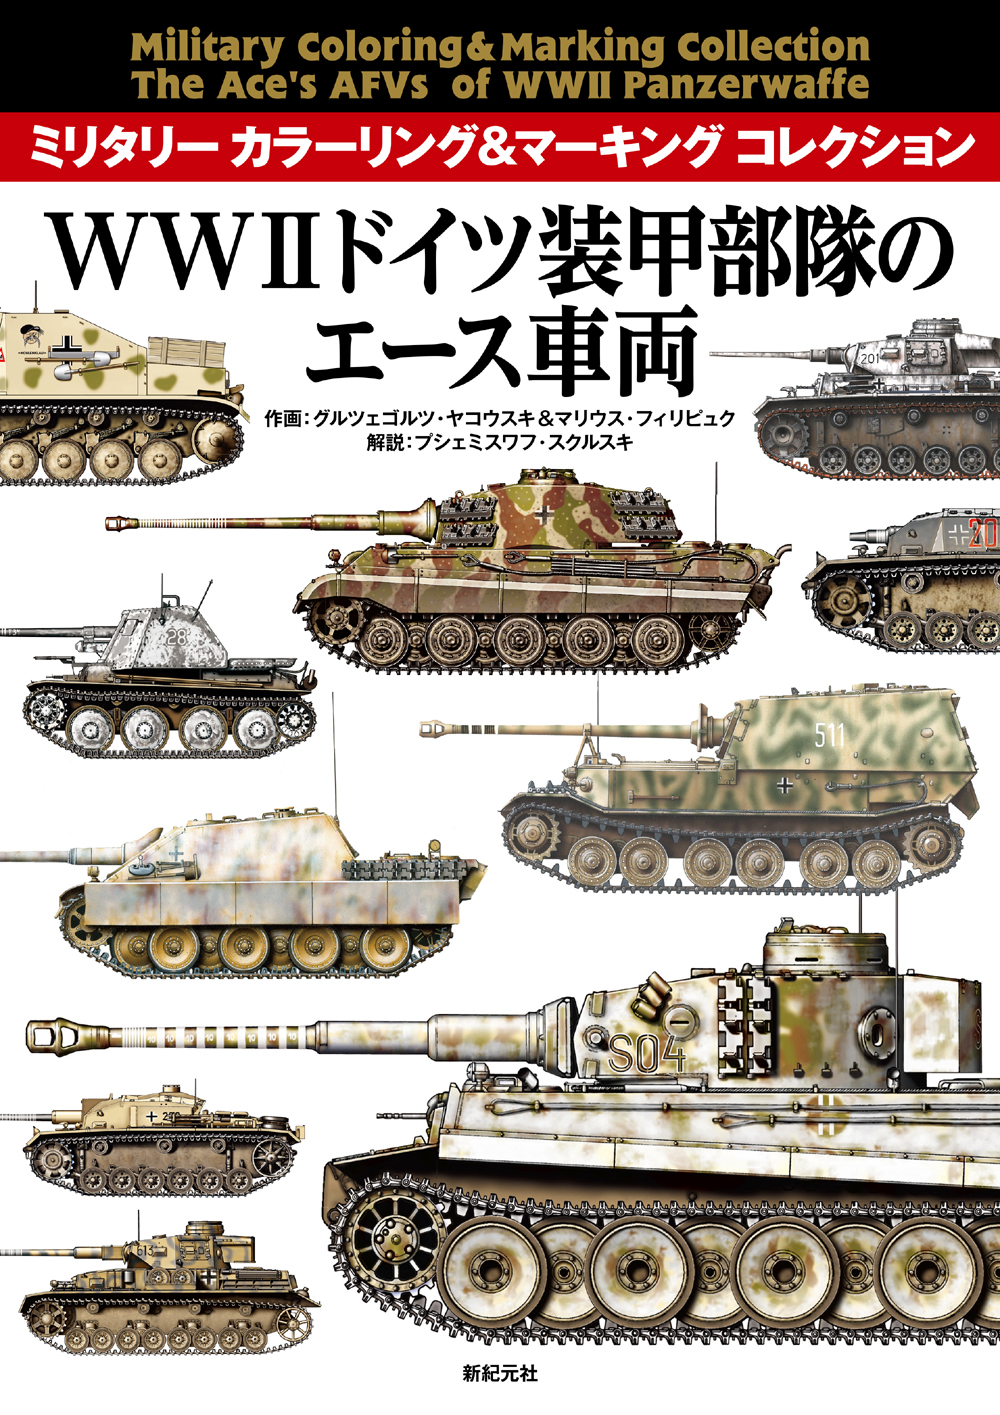 WWII ドイツ装甲部隊のエース車両